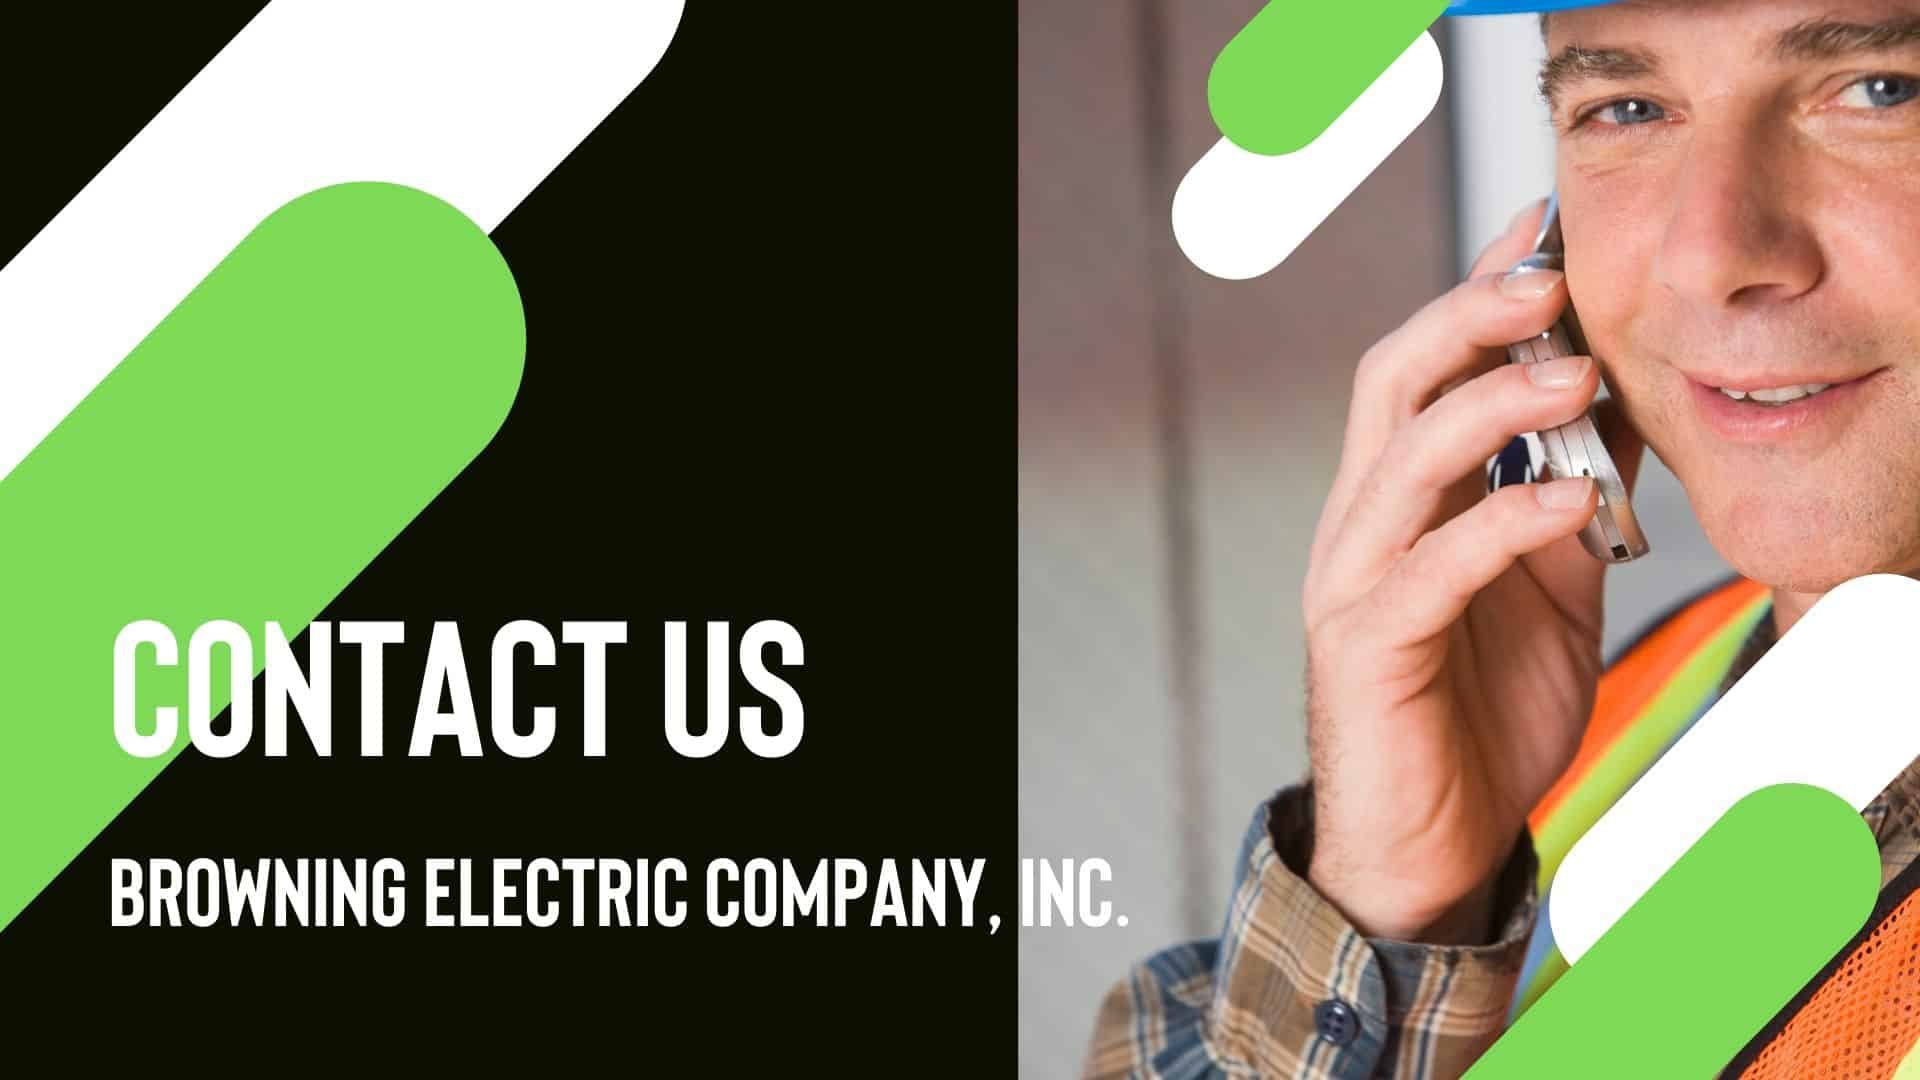 browning electric Commercial And Industrial Electrical Services contact us page